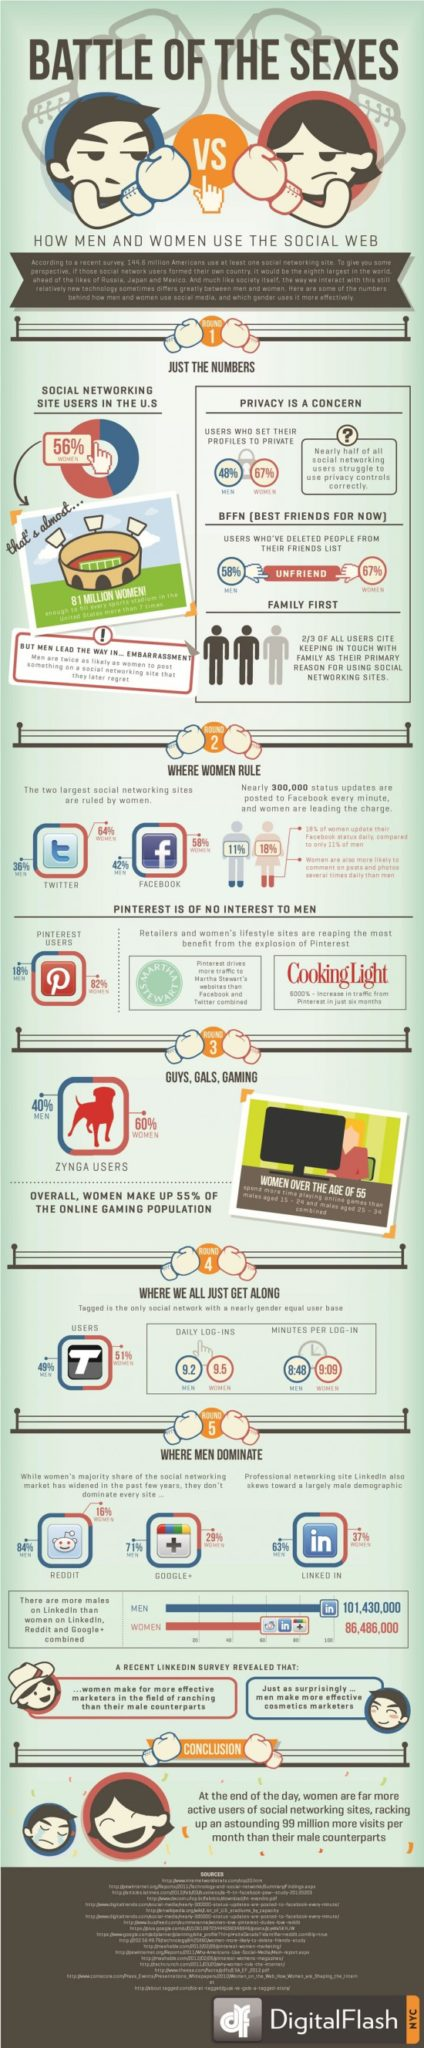 How men vs women use social media